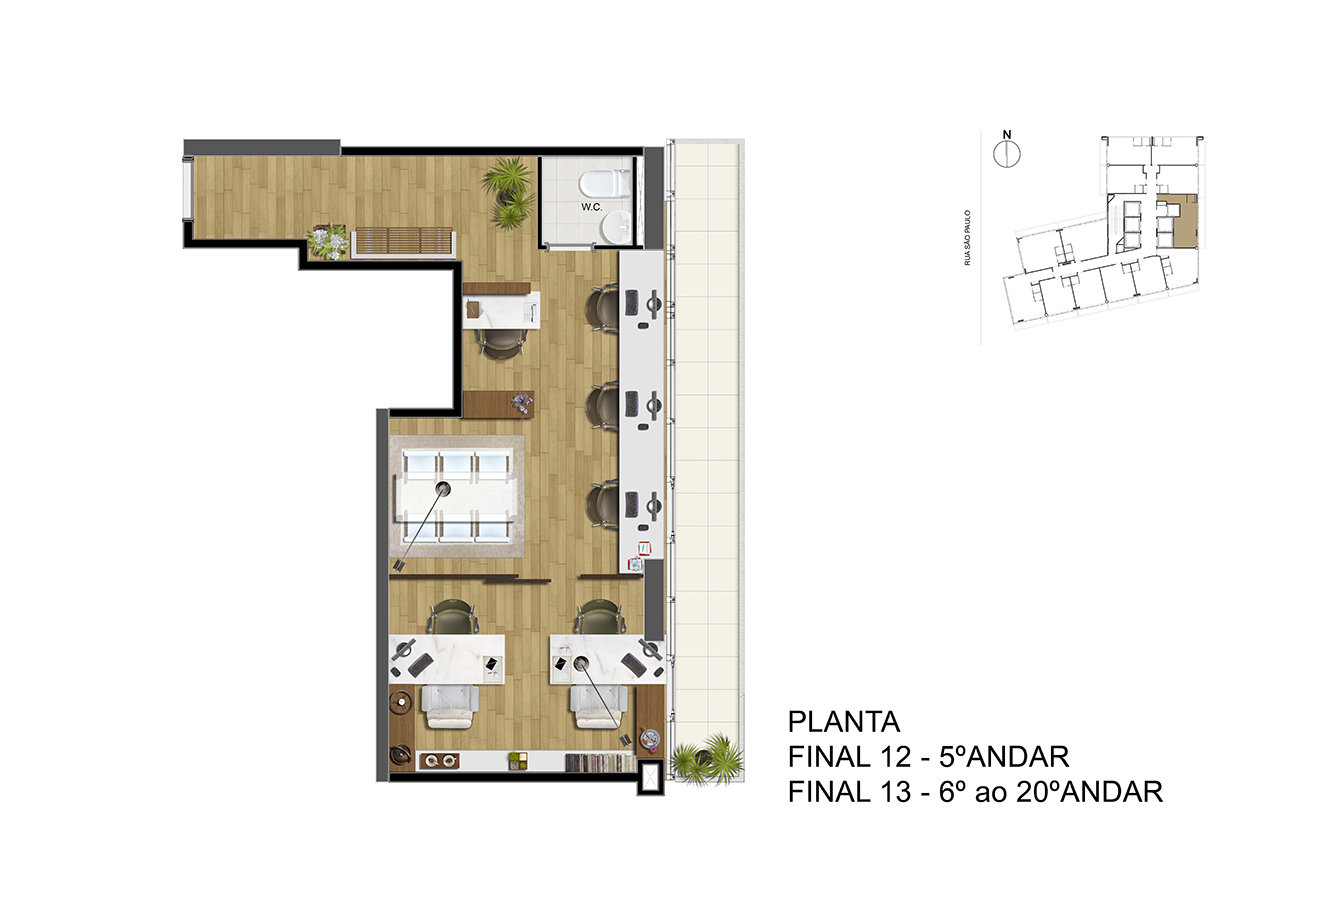 Planta - Final 12 - 5° Andar / Final 13 - 6° ao 20° Andar Manhattan Office Santos